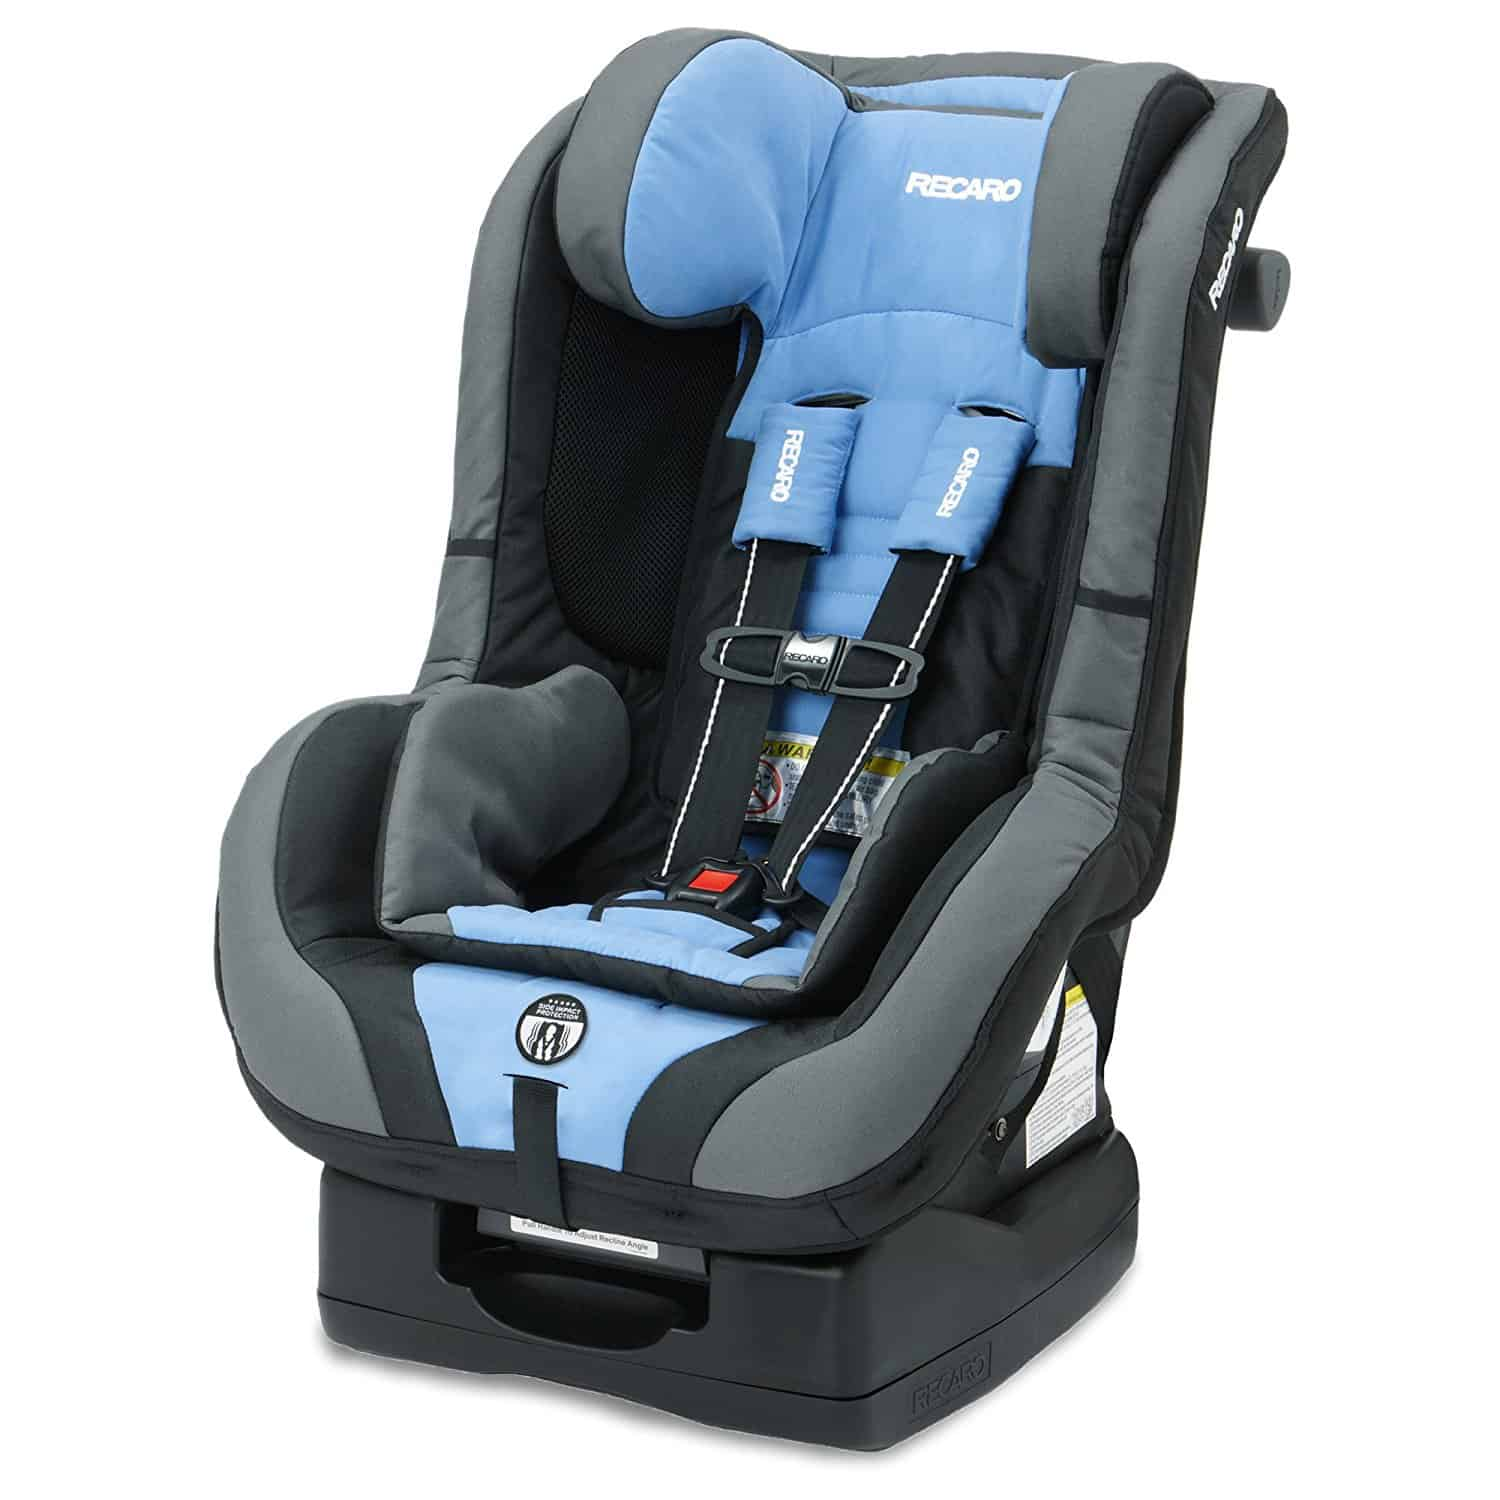 Convertible Car Seat Review: Recaro ProRIDE